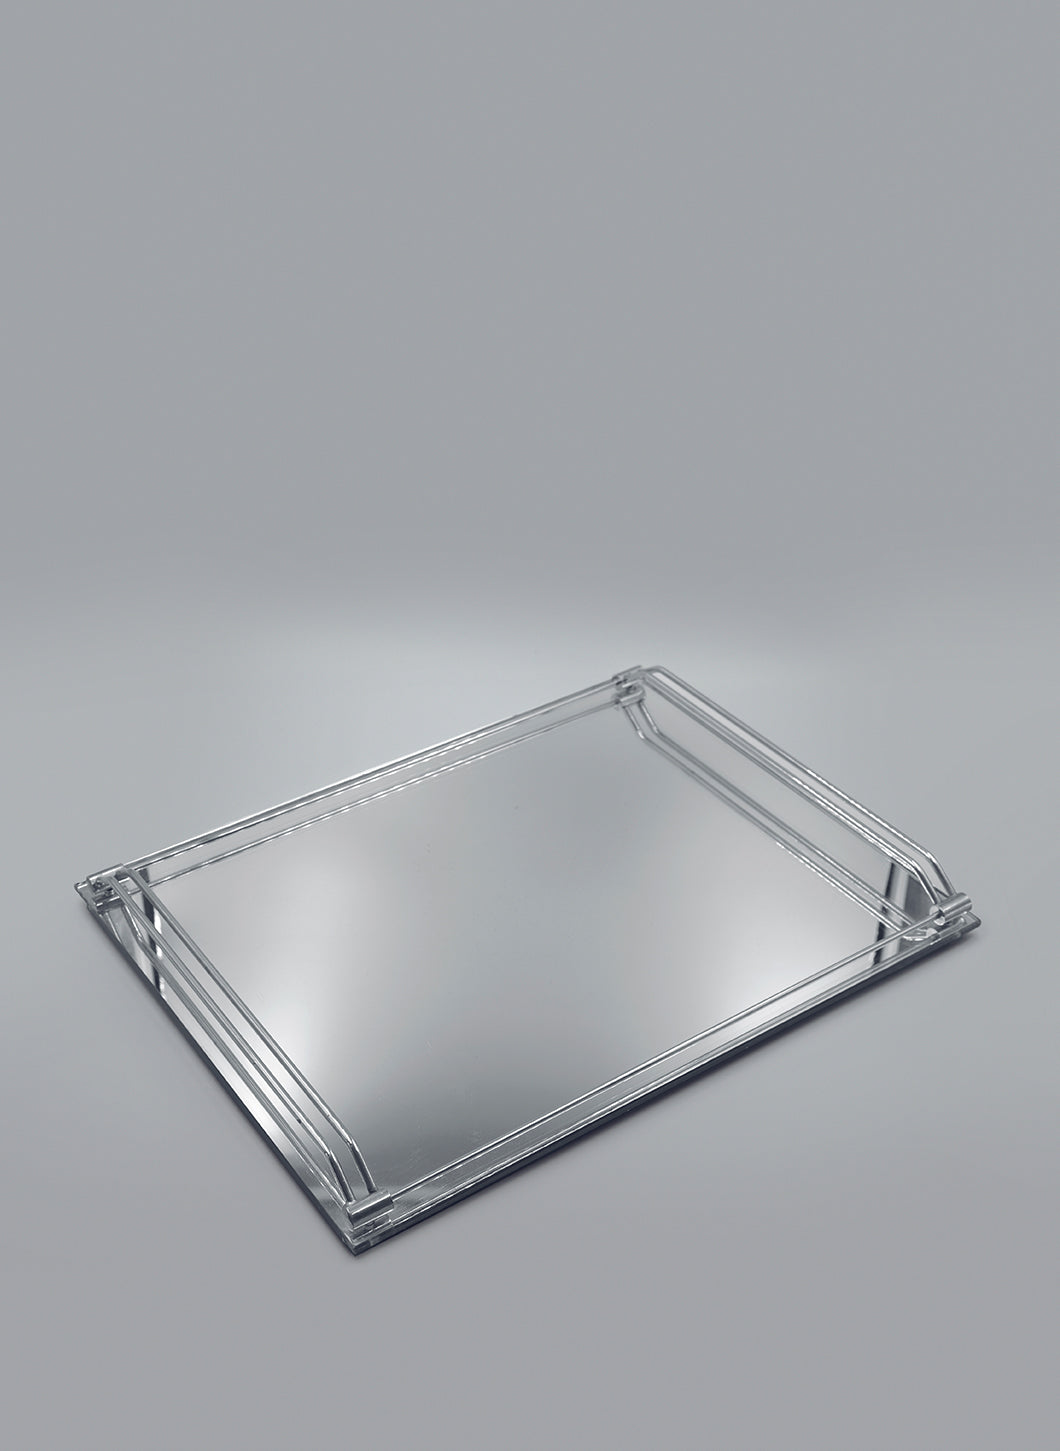 Mirrored Tray with Stainless Steel Handles